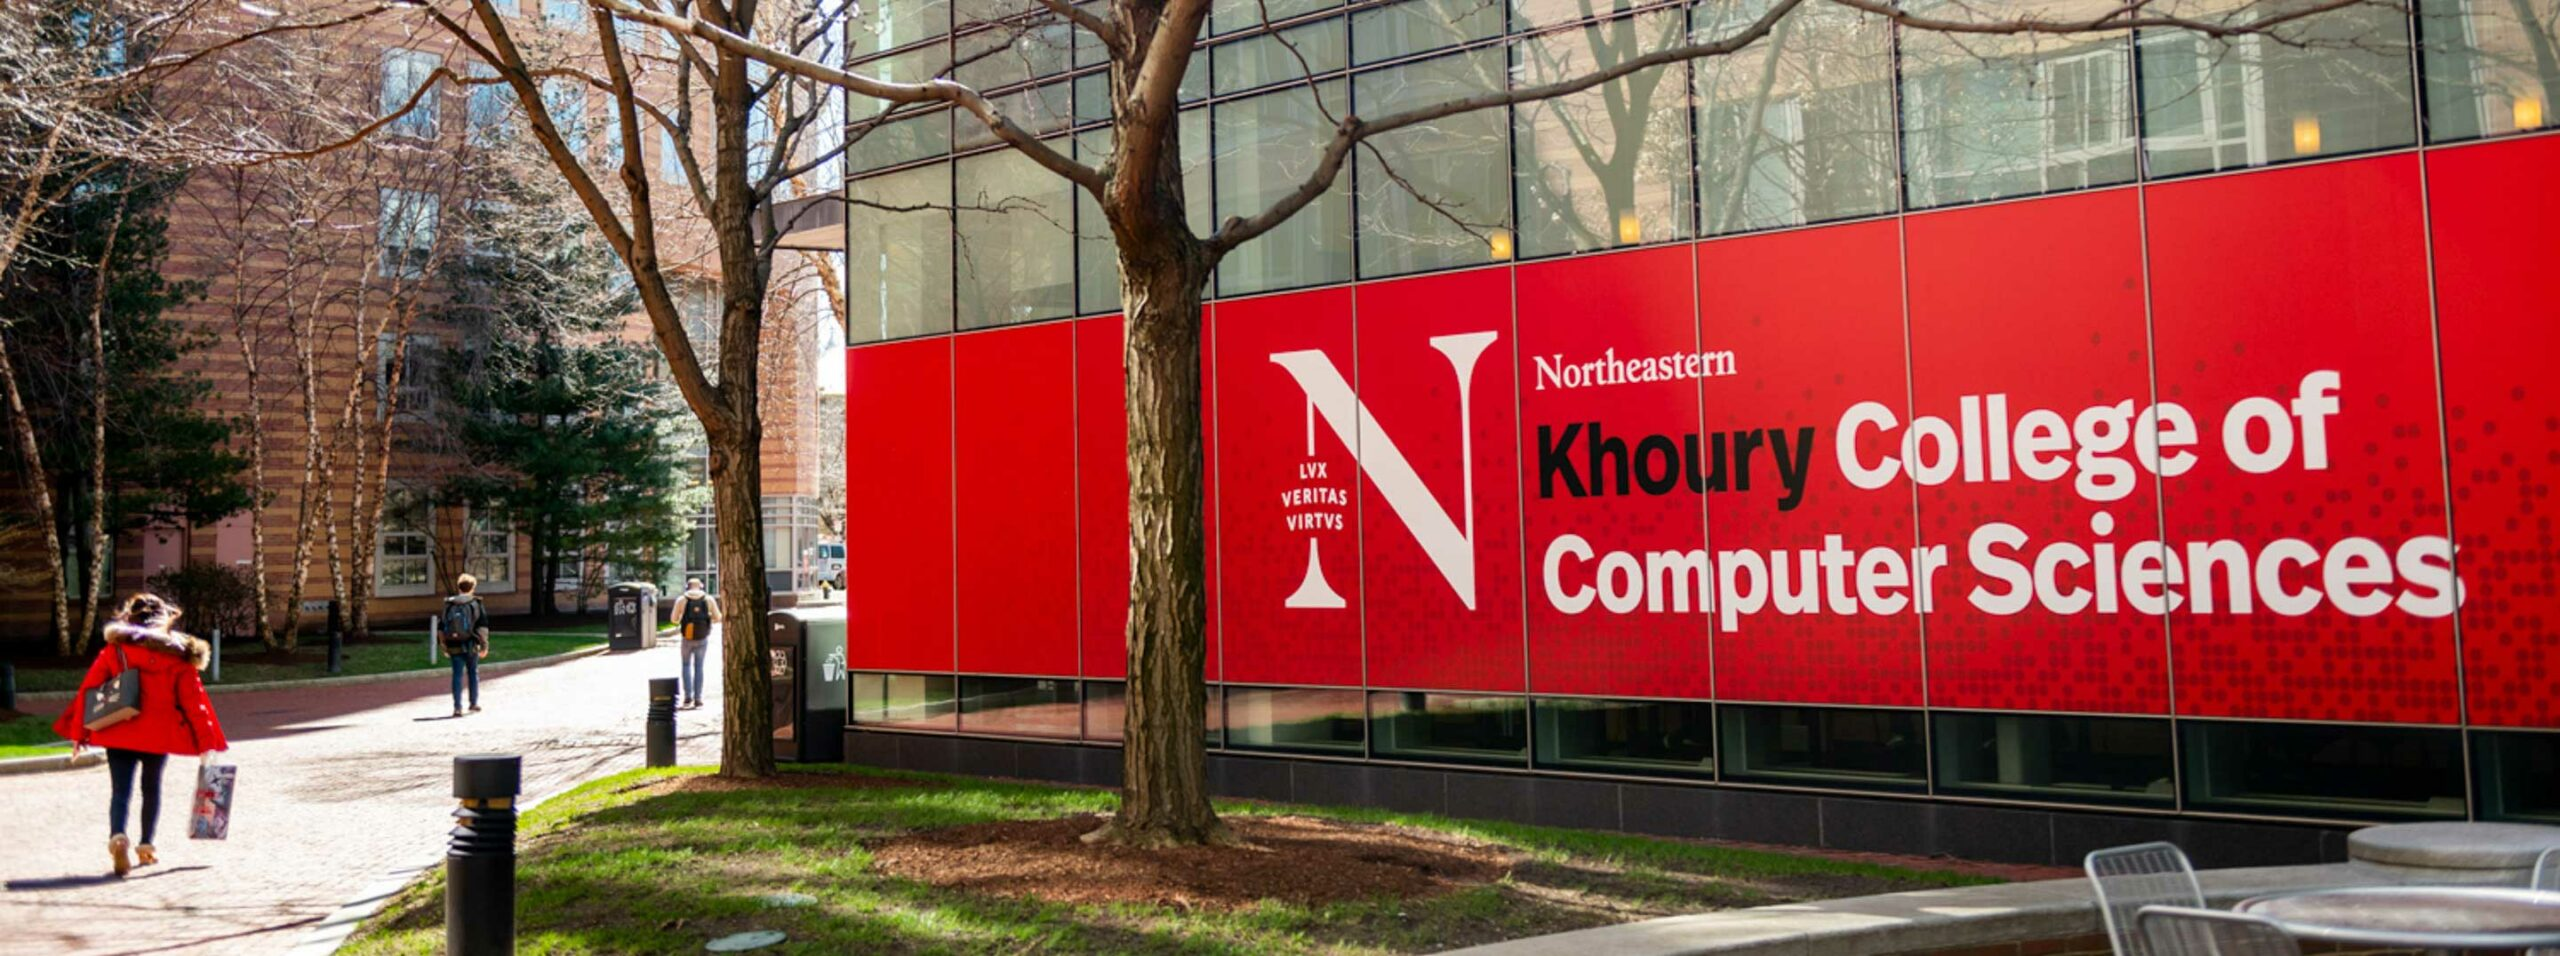 A view of the Khoury College banner outside West Village H